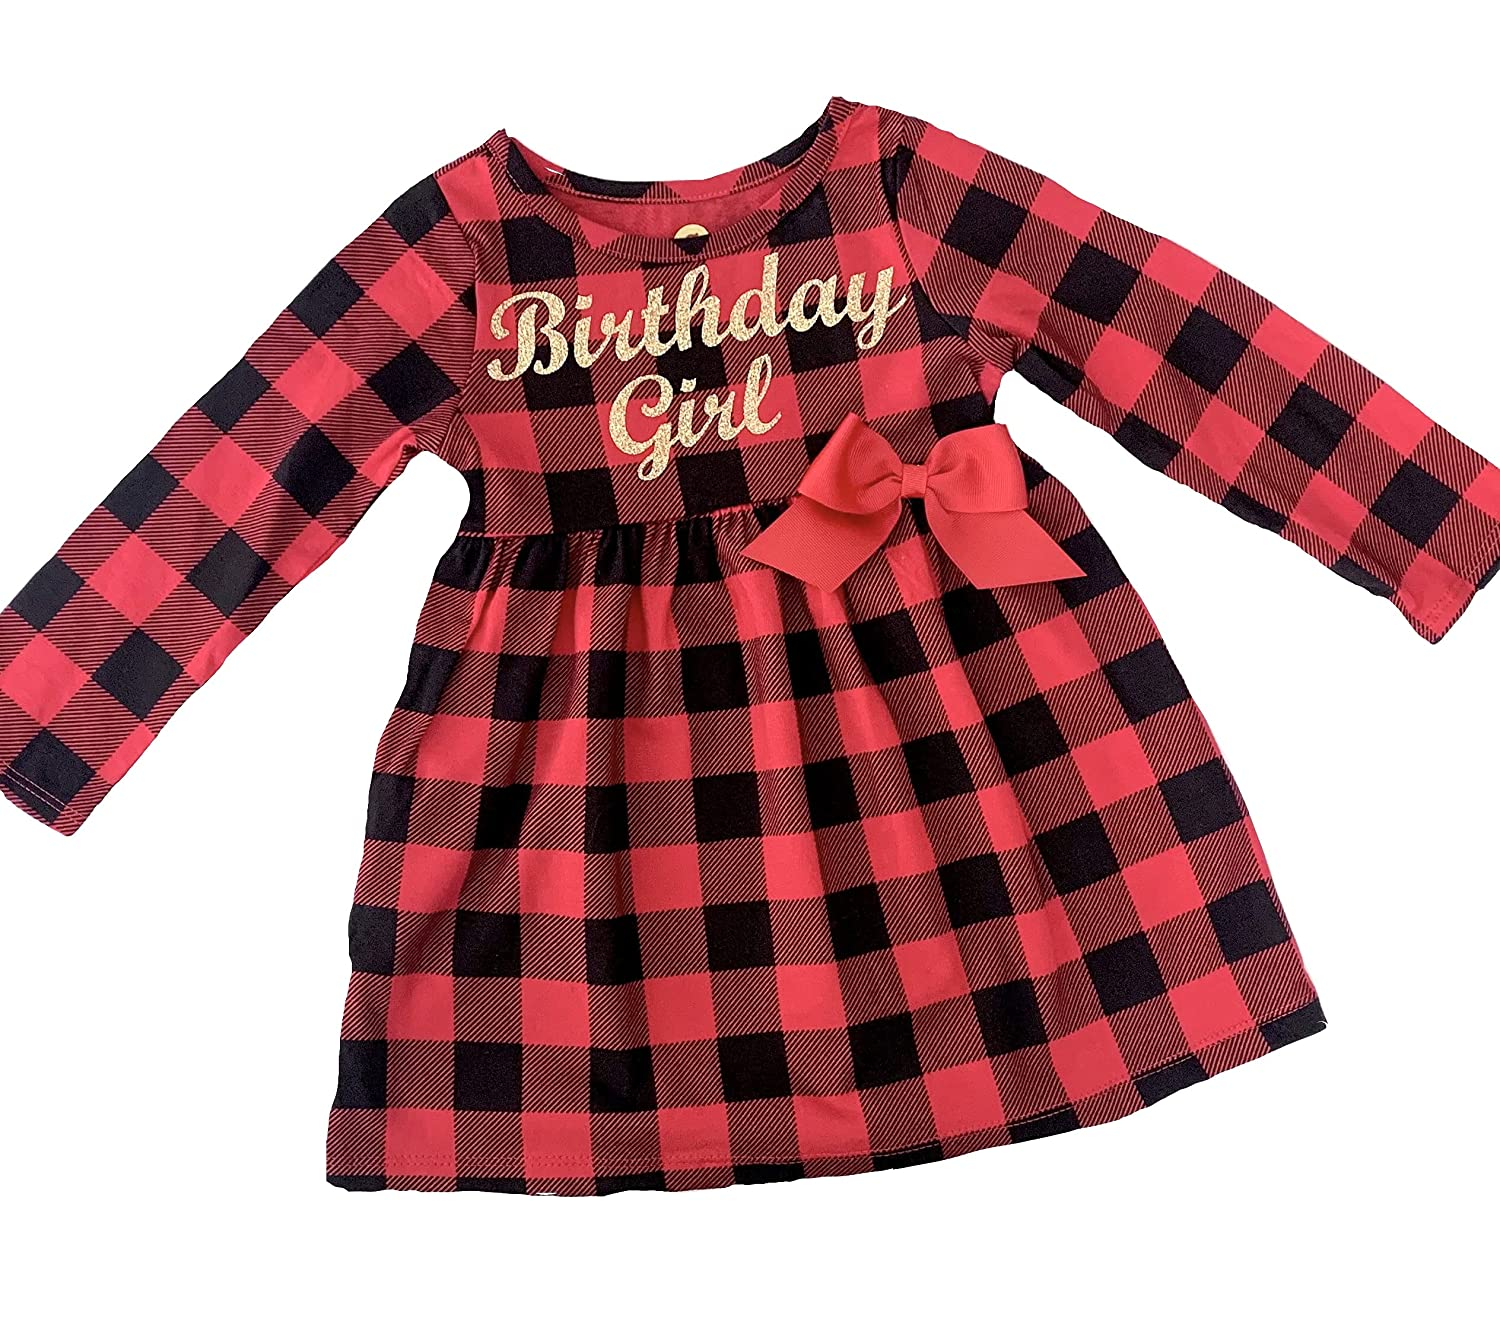 Birthday Girl Some reservation Buffalo plaid baby and knit girls toddler New Free Shipping in dress